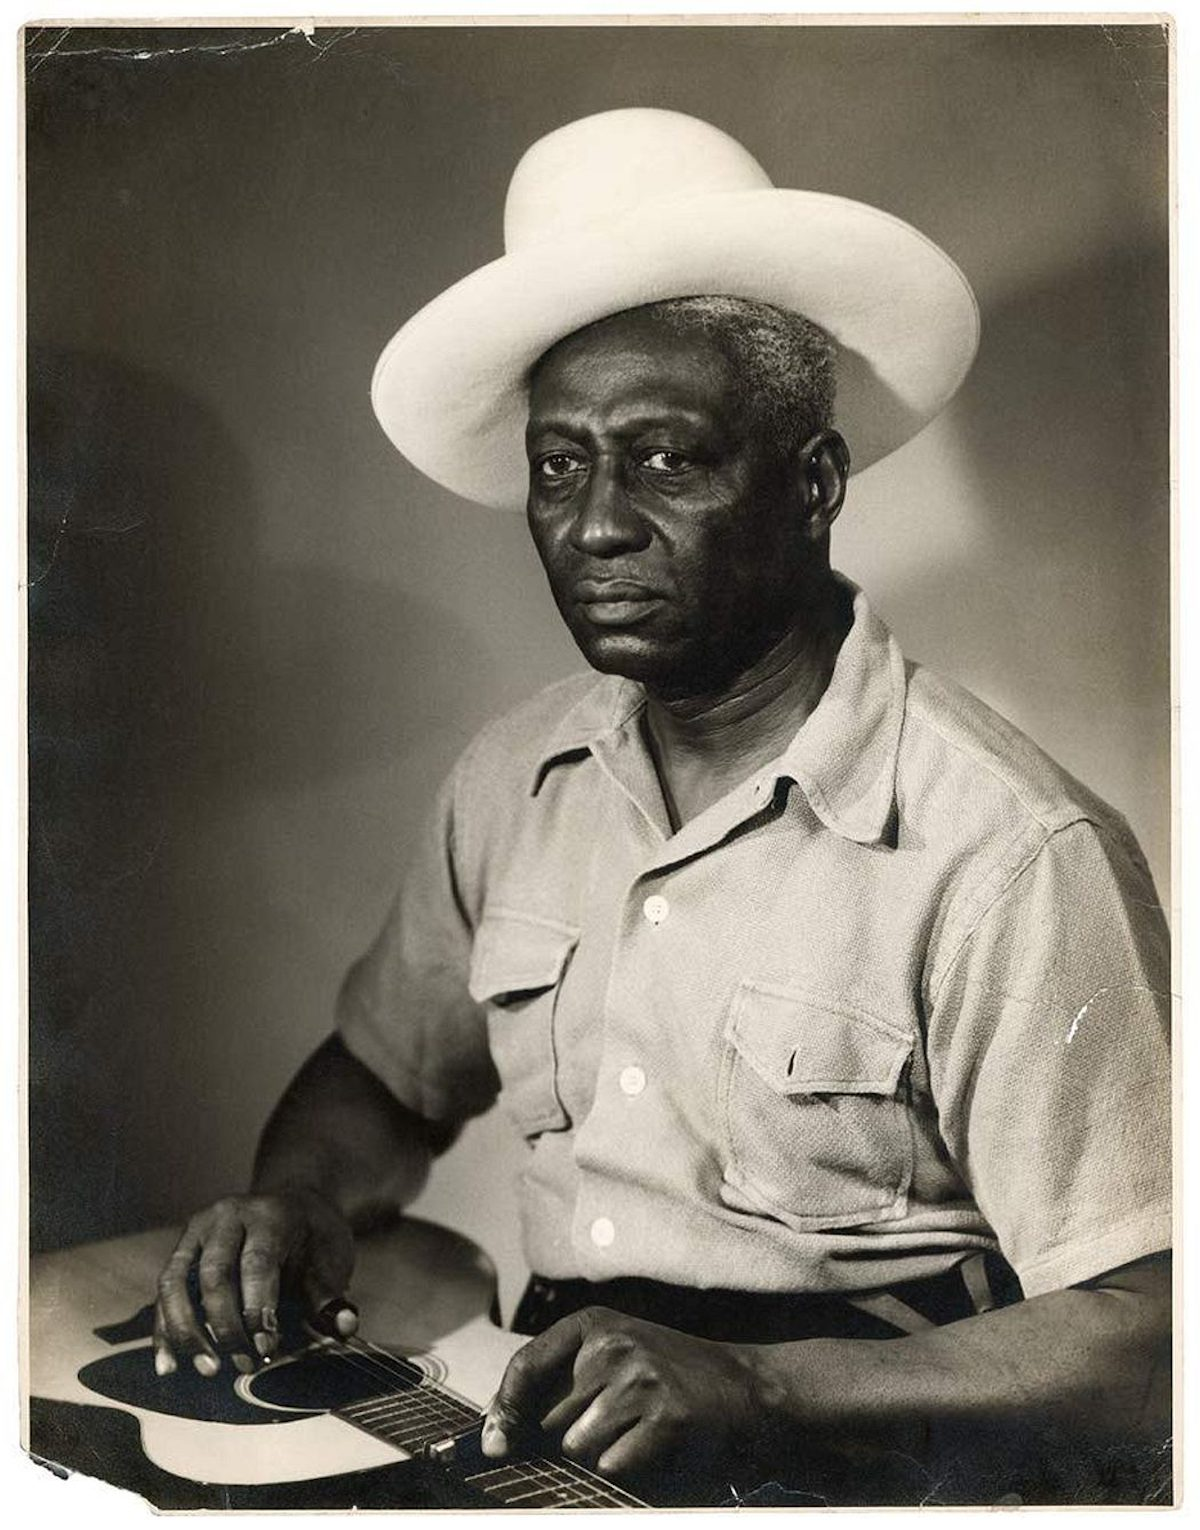 Portrait of Lead Belly